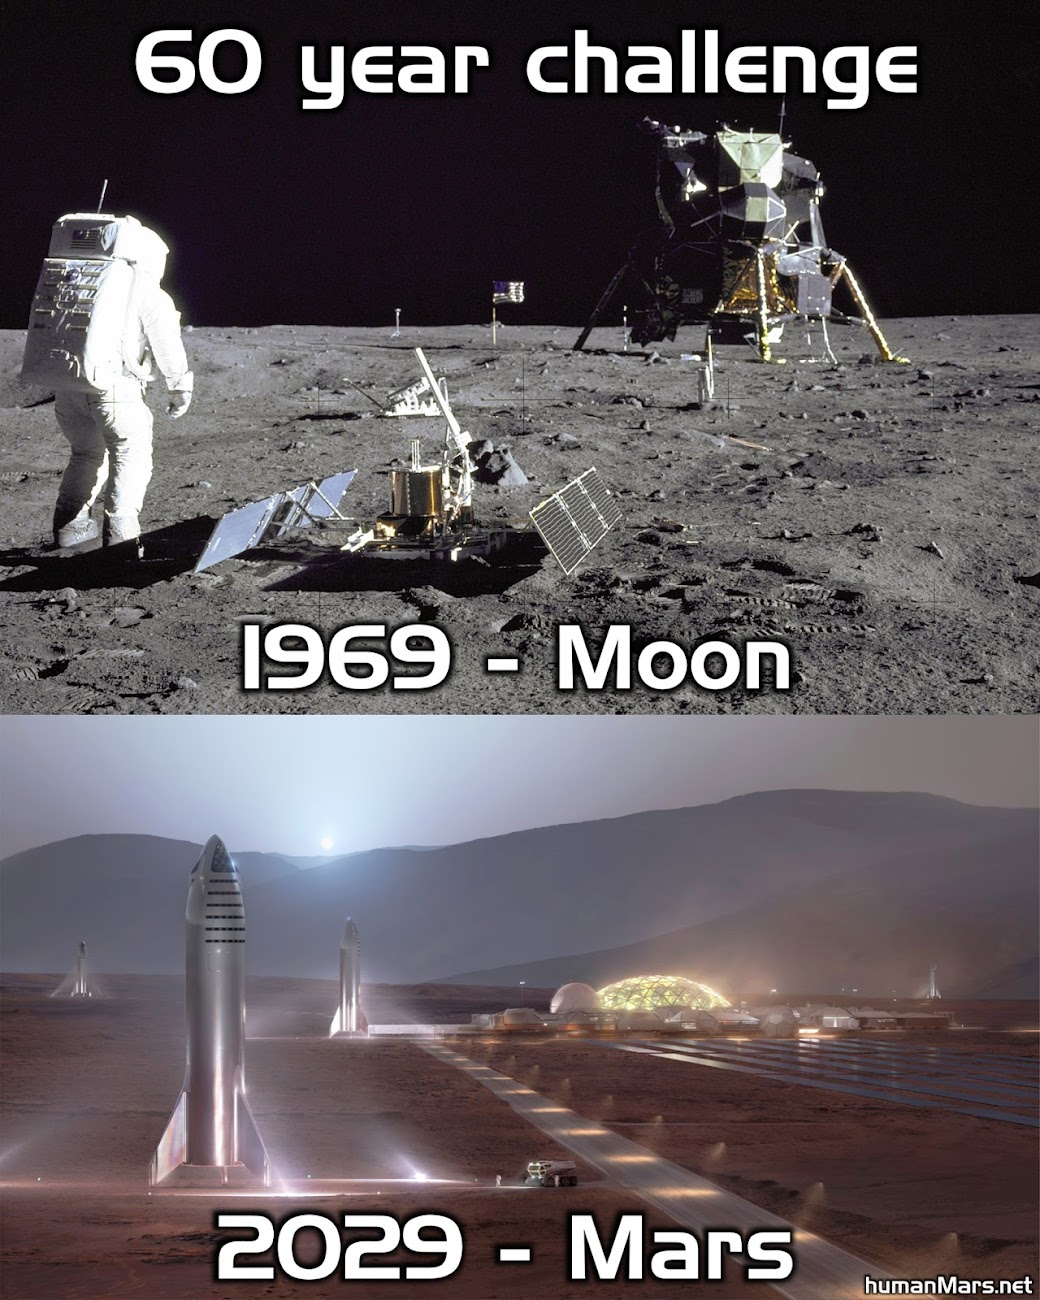 60 year challenge for humanity: 1969 - Moon, 2029 - Mars